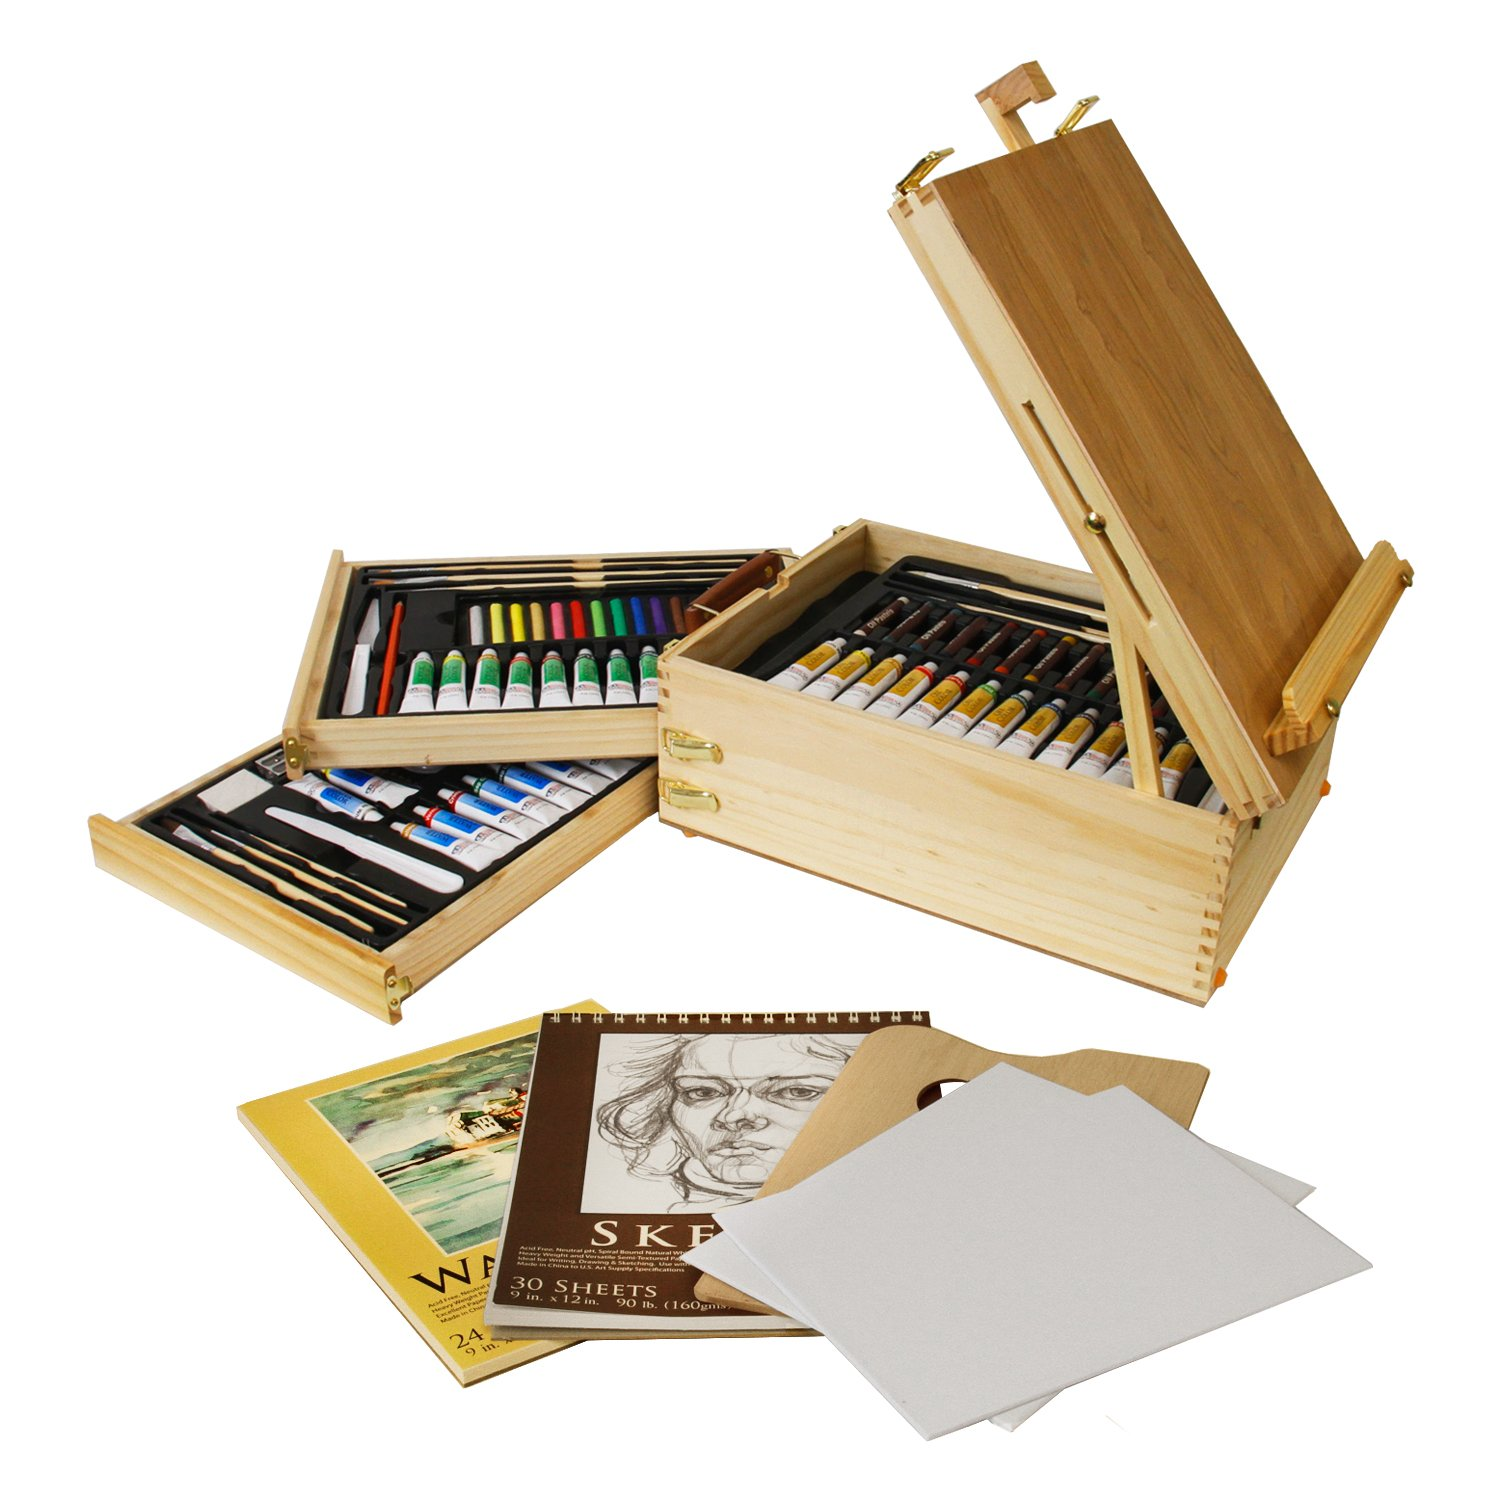 "US Art Supply 95-Piece Wood Box Easel Painting Set - 12-tubes of Oil Colors, 12 Oil Pastels, Plastic Palette Knife, 3 Assorted Oil Painting Brushes, 2-ea 8""x10"" Canvas Panels, 12-tubes of Acrylic Colors, 12 Artist Pastels, 3 Assorted Acrylic Painting Brushes, Palette Knife, Hb Pencil, 12-tubes of"